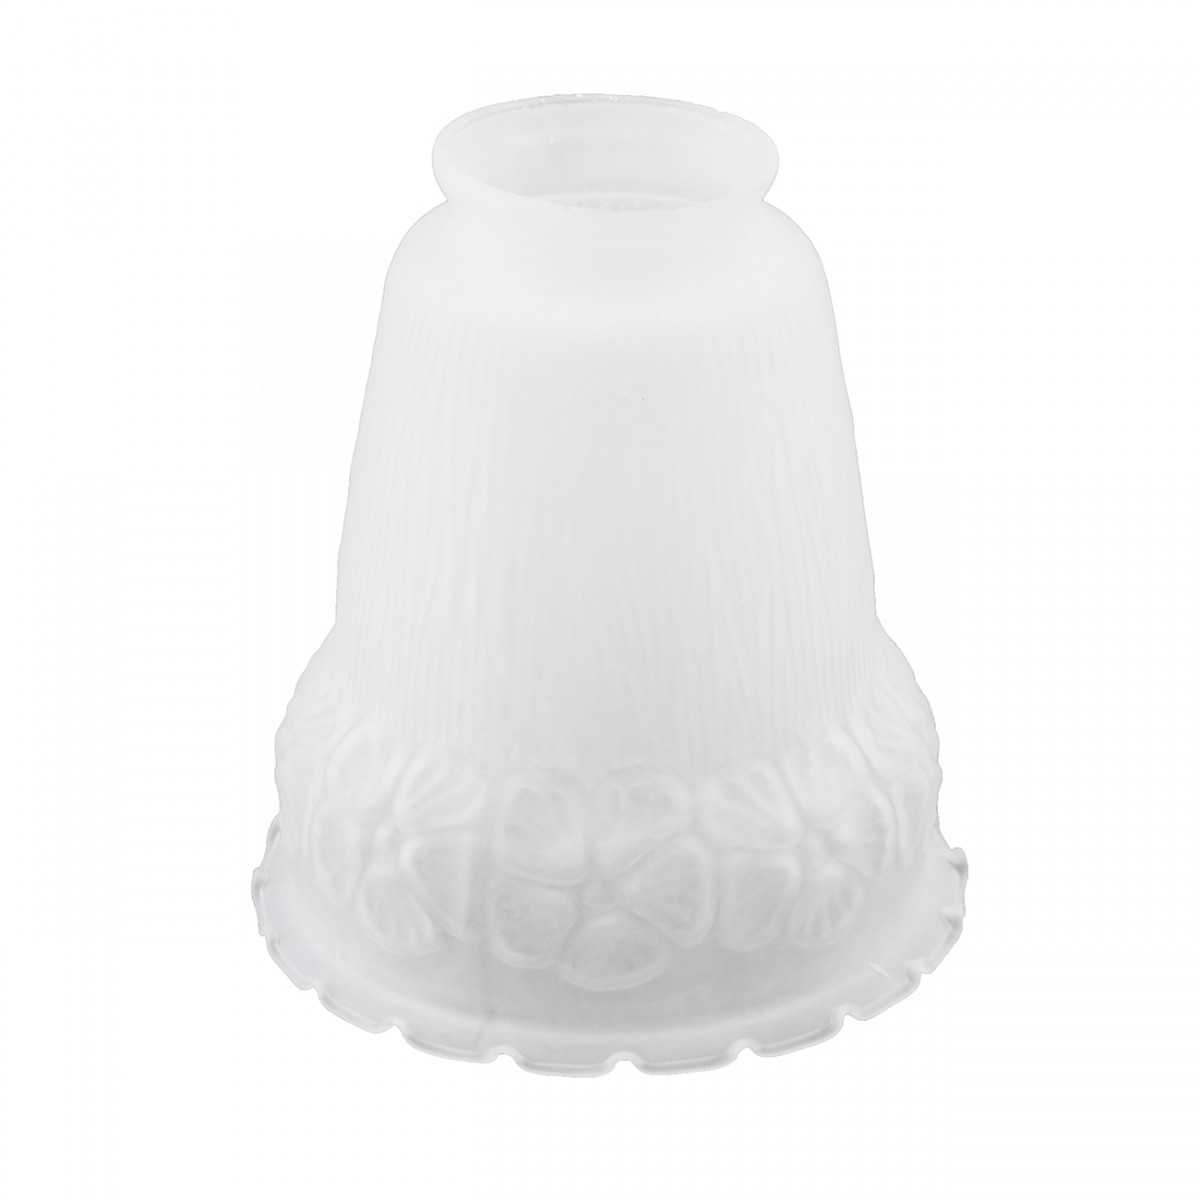 Renovators Supply White 5 12 X 2 14 Flower Bell Frosted Glass